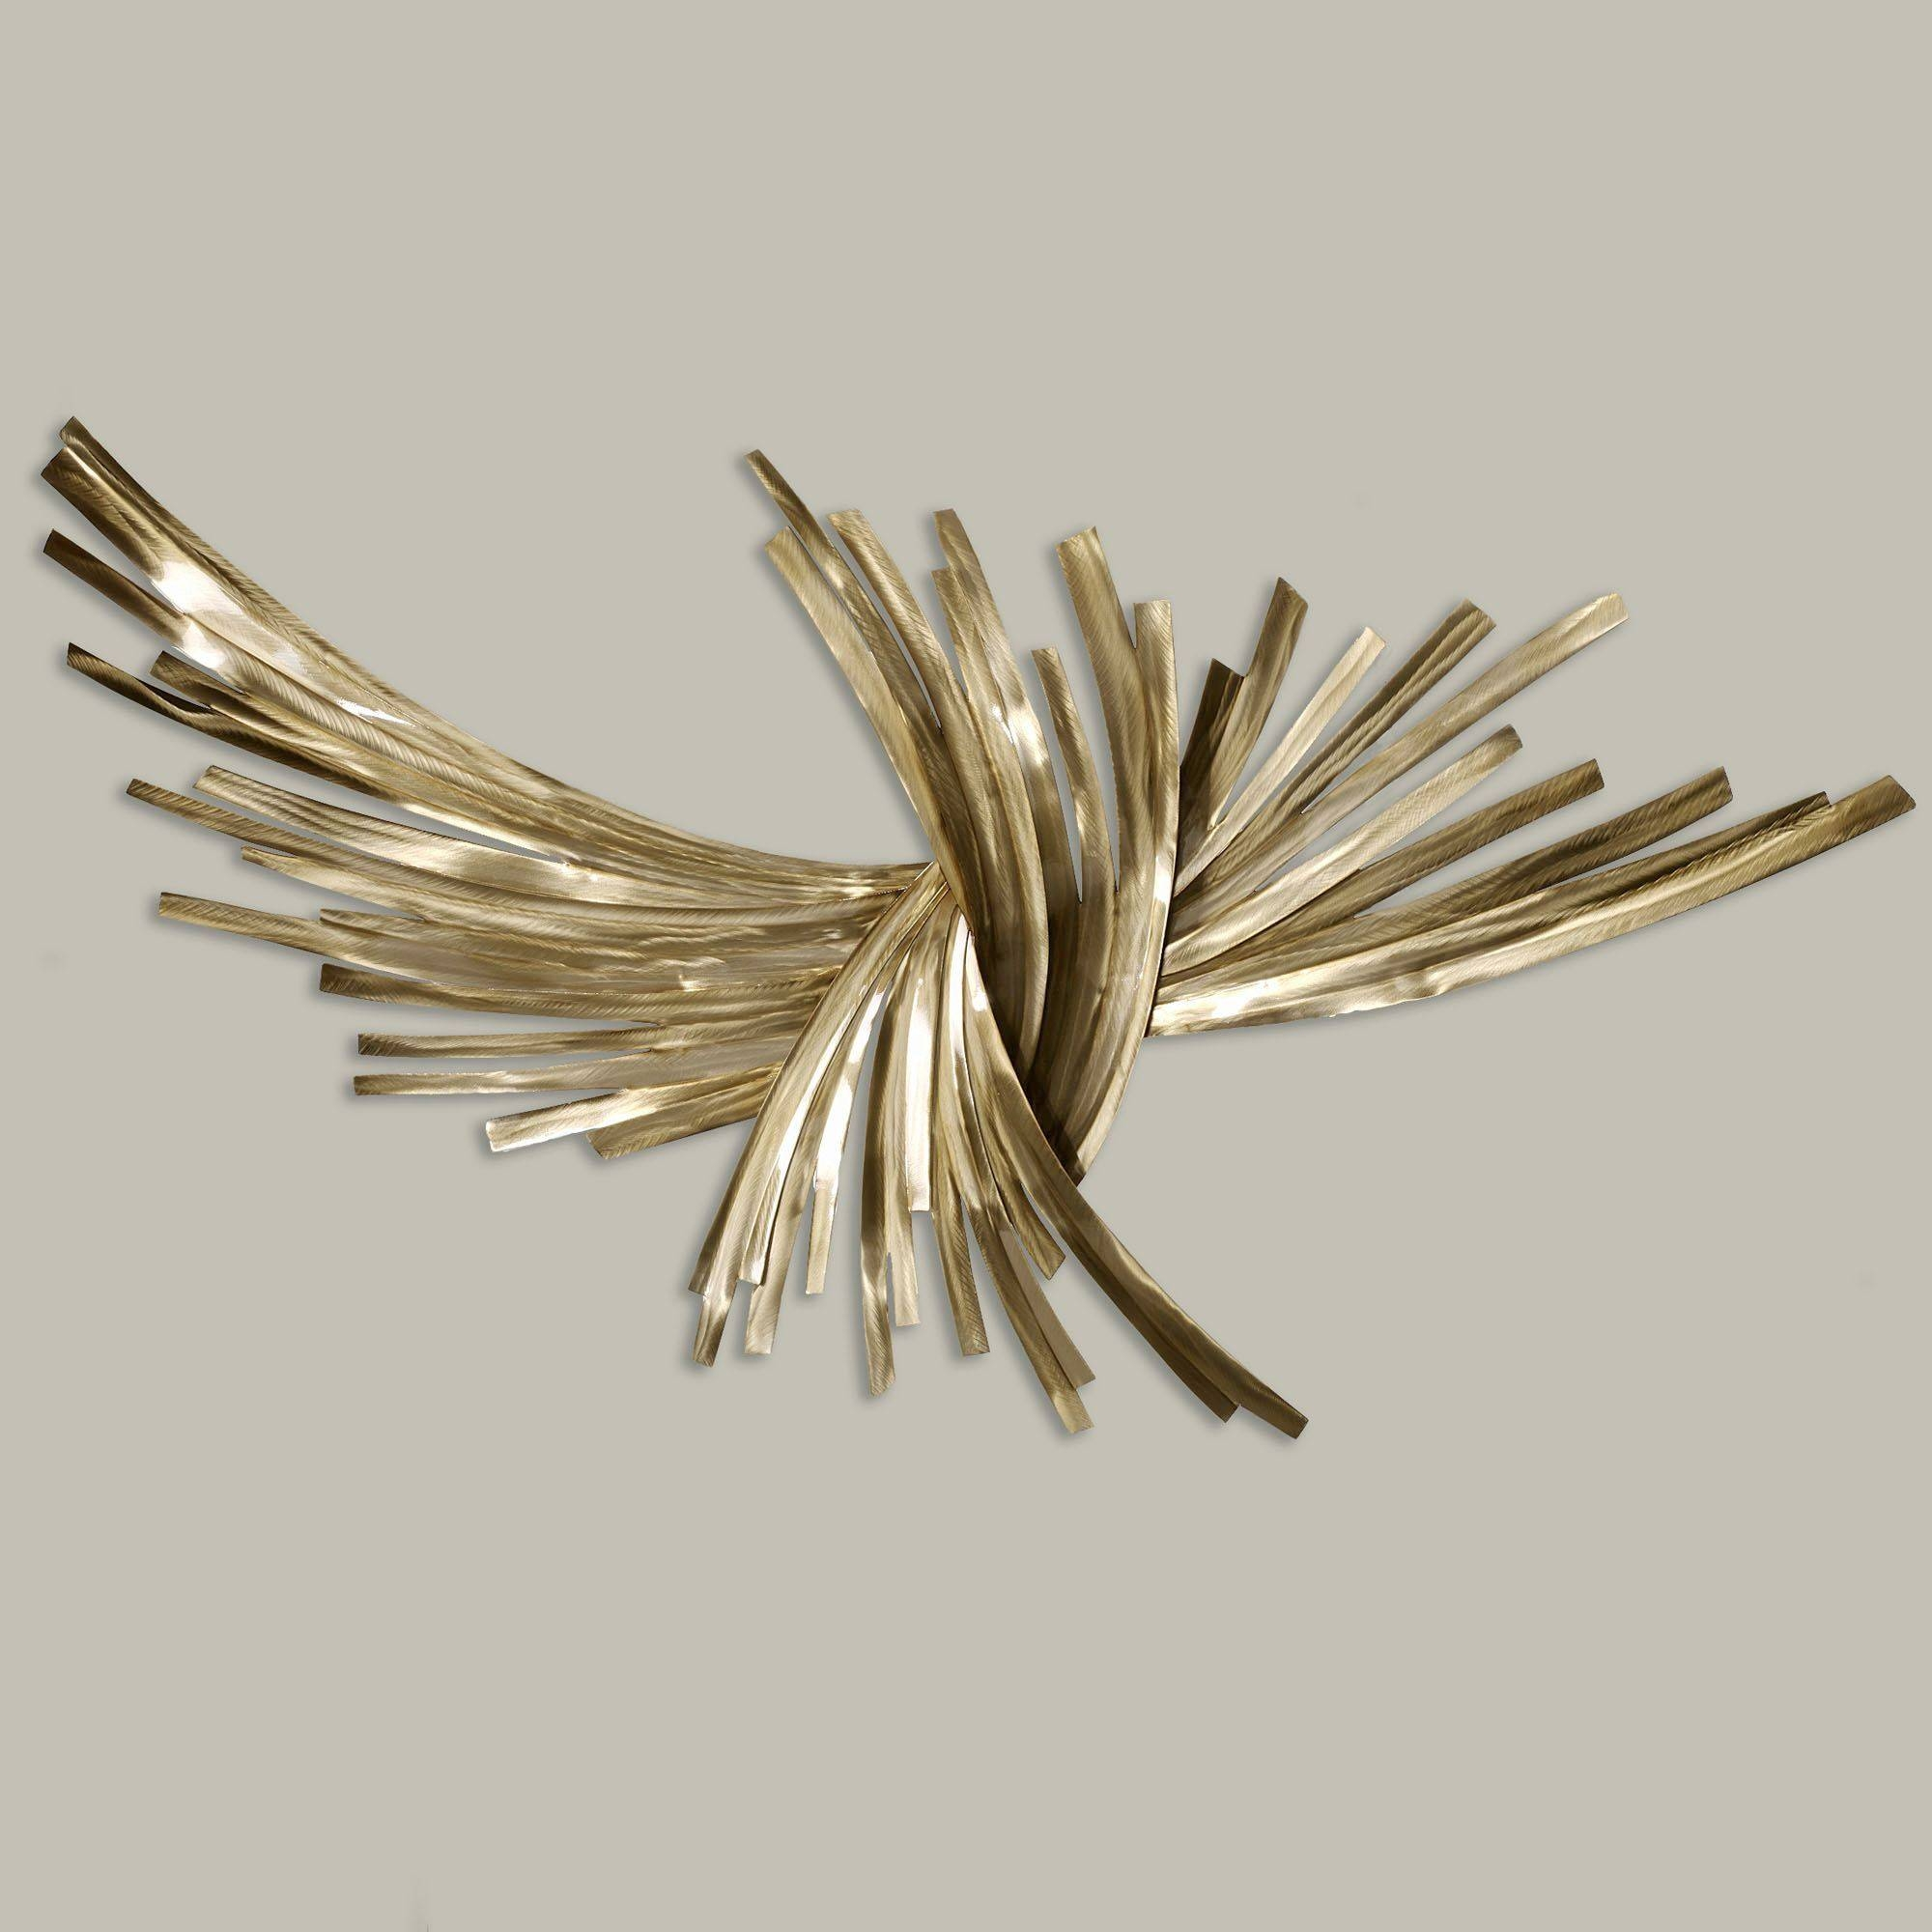 Contemporary Metal Wall Art Sculptures | Touch Of Class With Recent Silver Metal Wall Art (View 20 of 20)